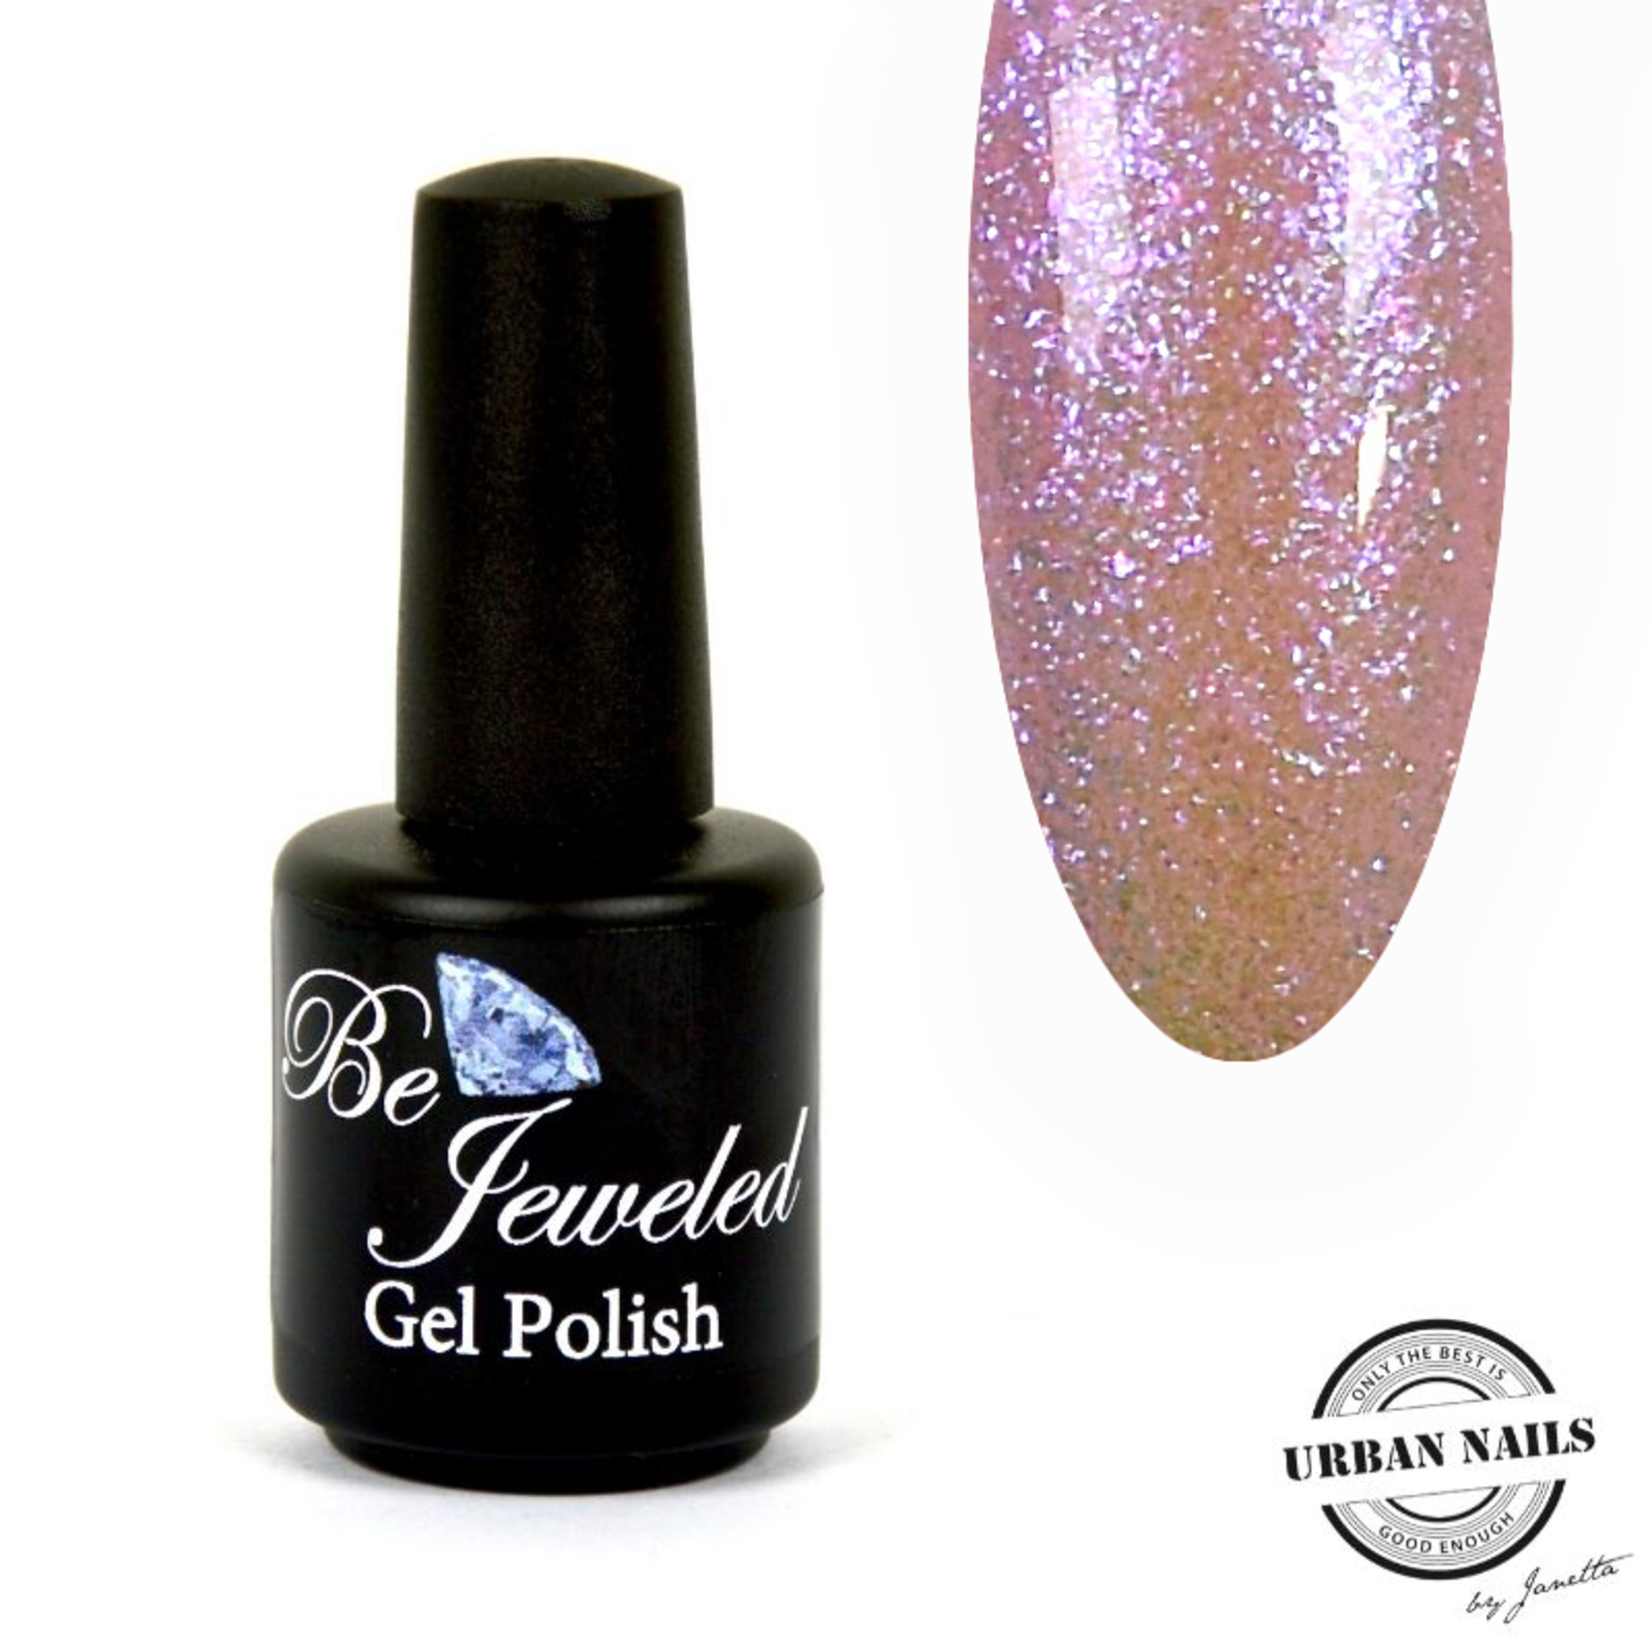 Urban Nails Be Jeweled Enchanted Gelpolish 06 Roze/Geel